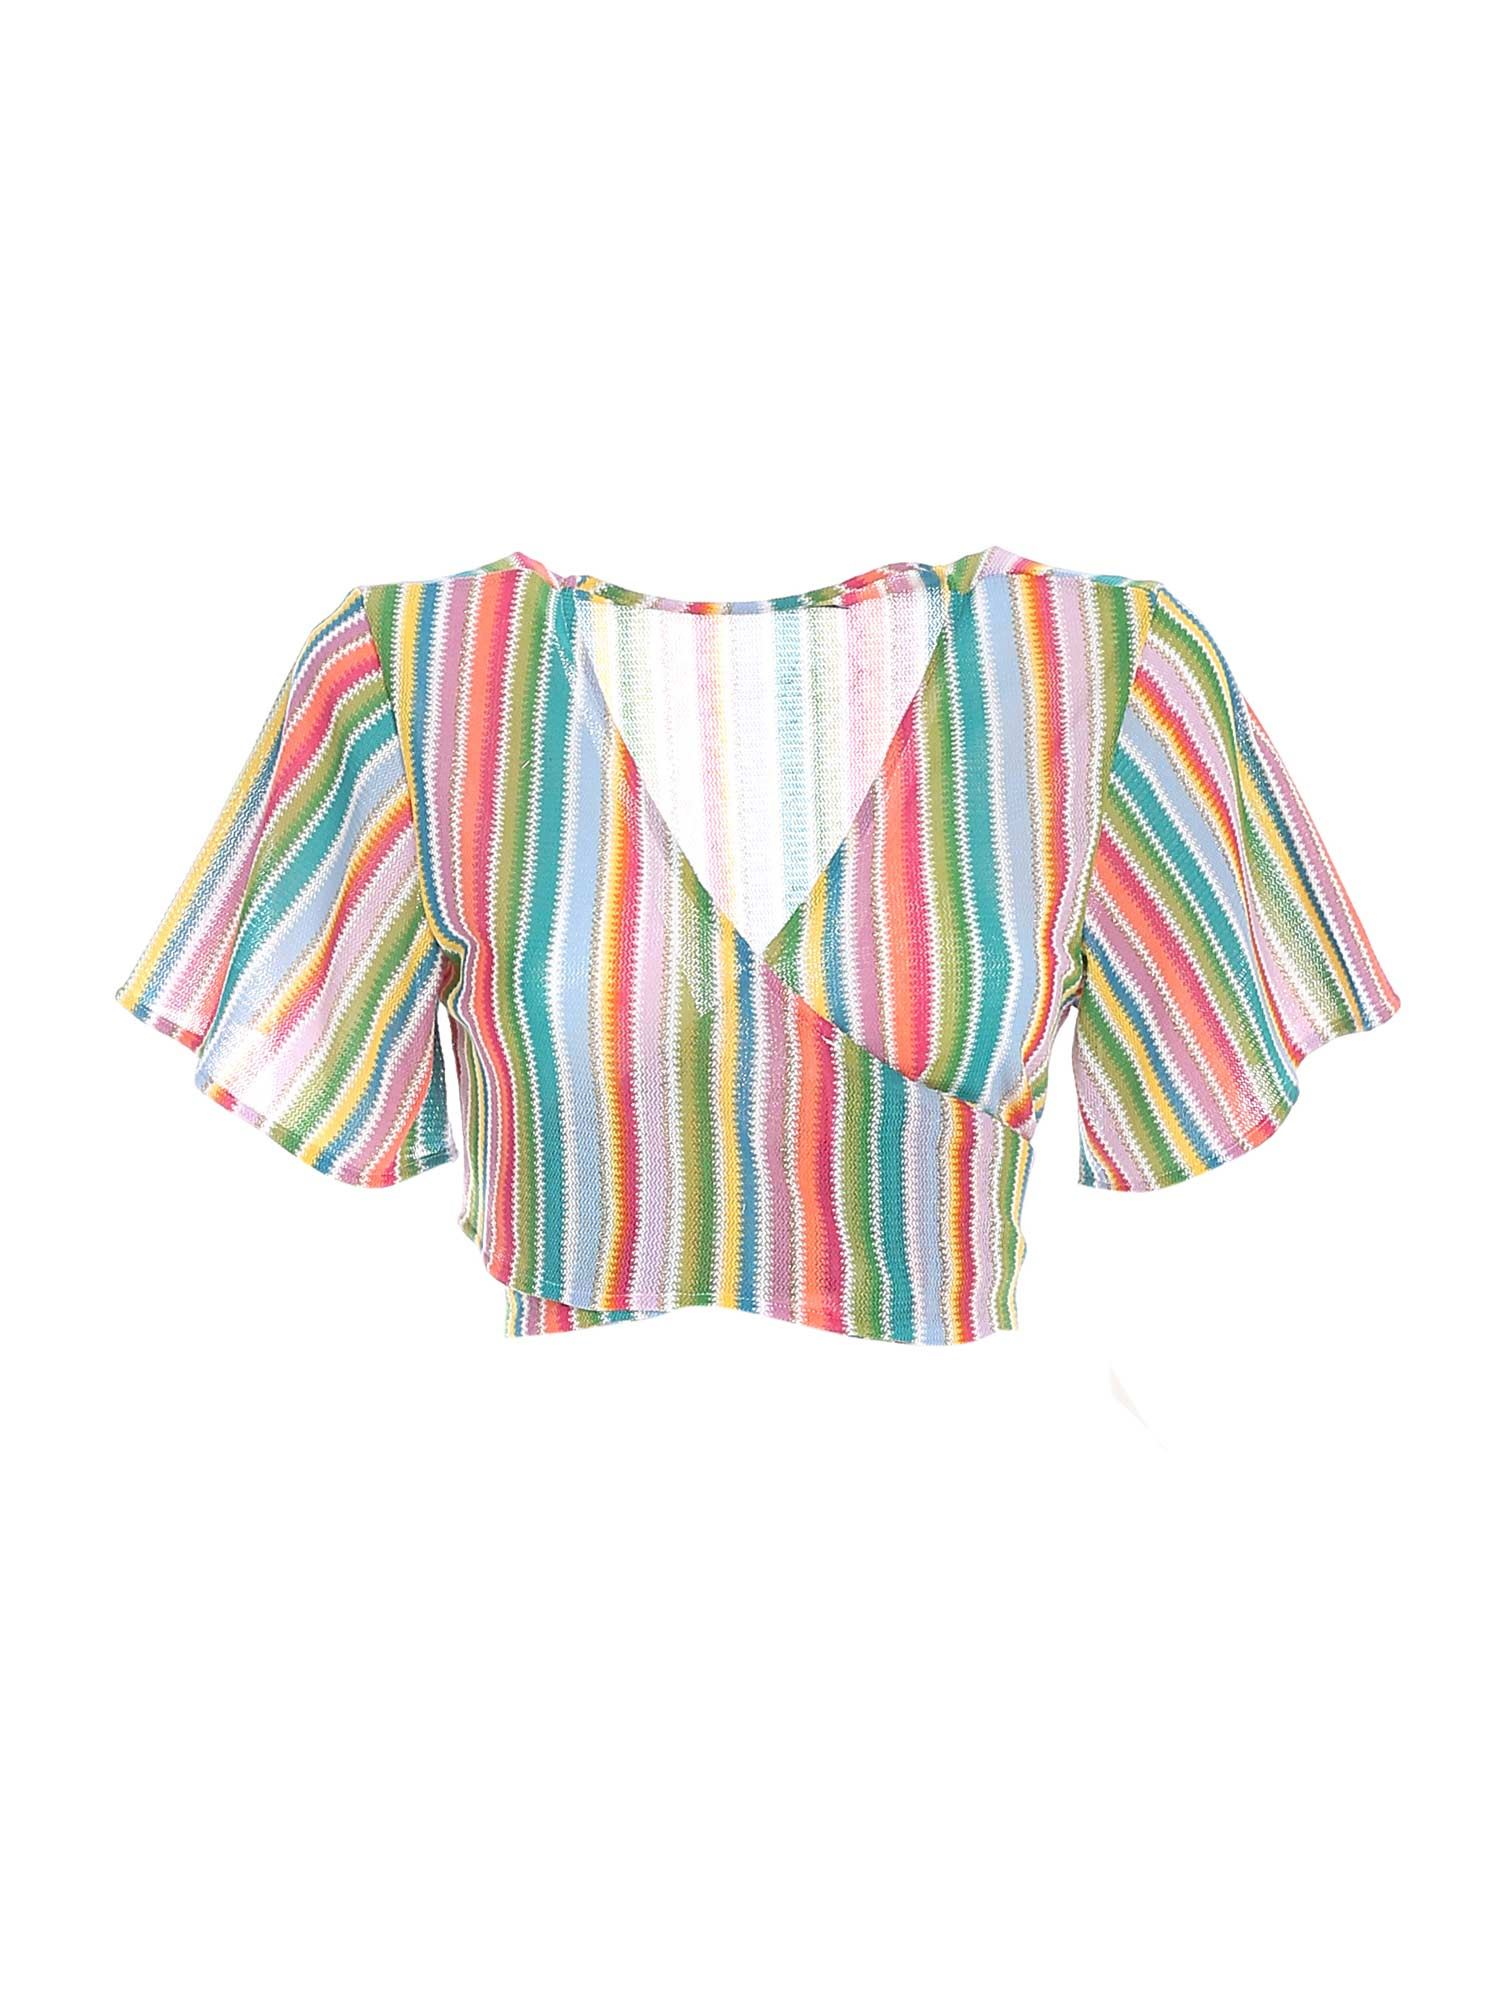 ANGELINA CROPPED BLOUSE IN MULTICOLOR MC2 SAINT BARTH   10000004   ANGELINAX0045